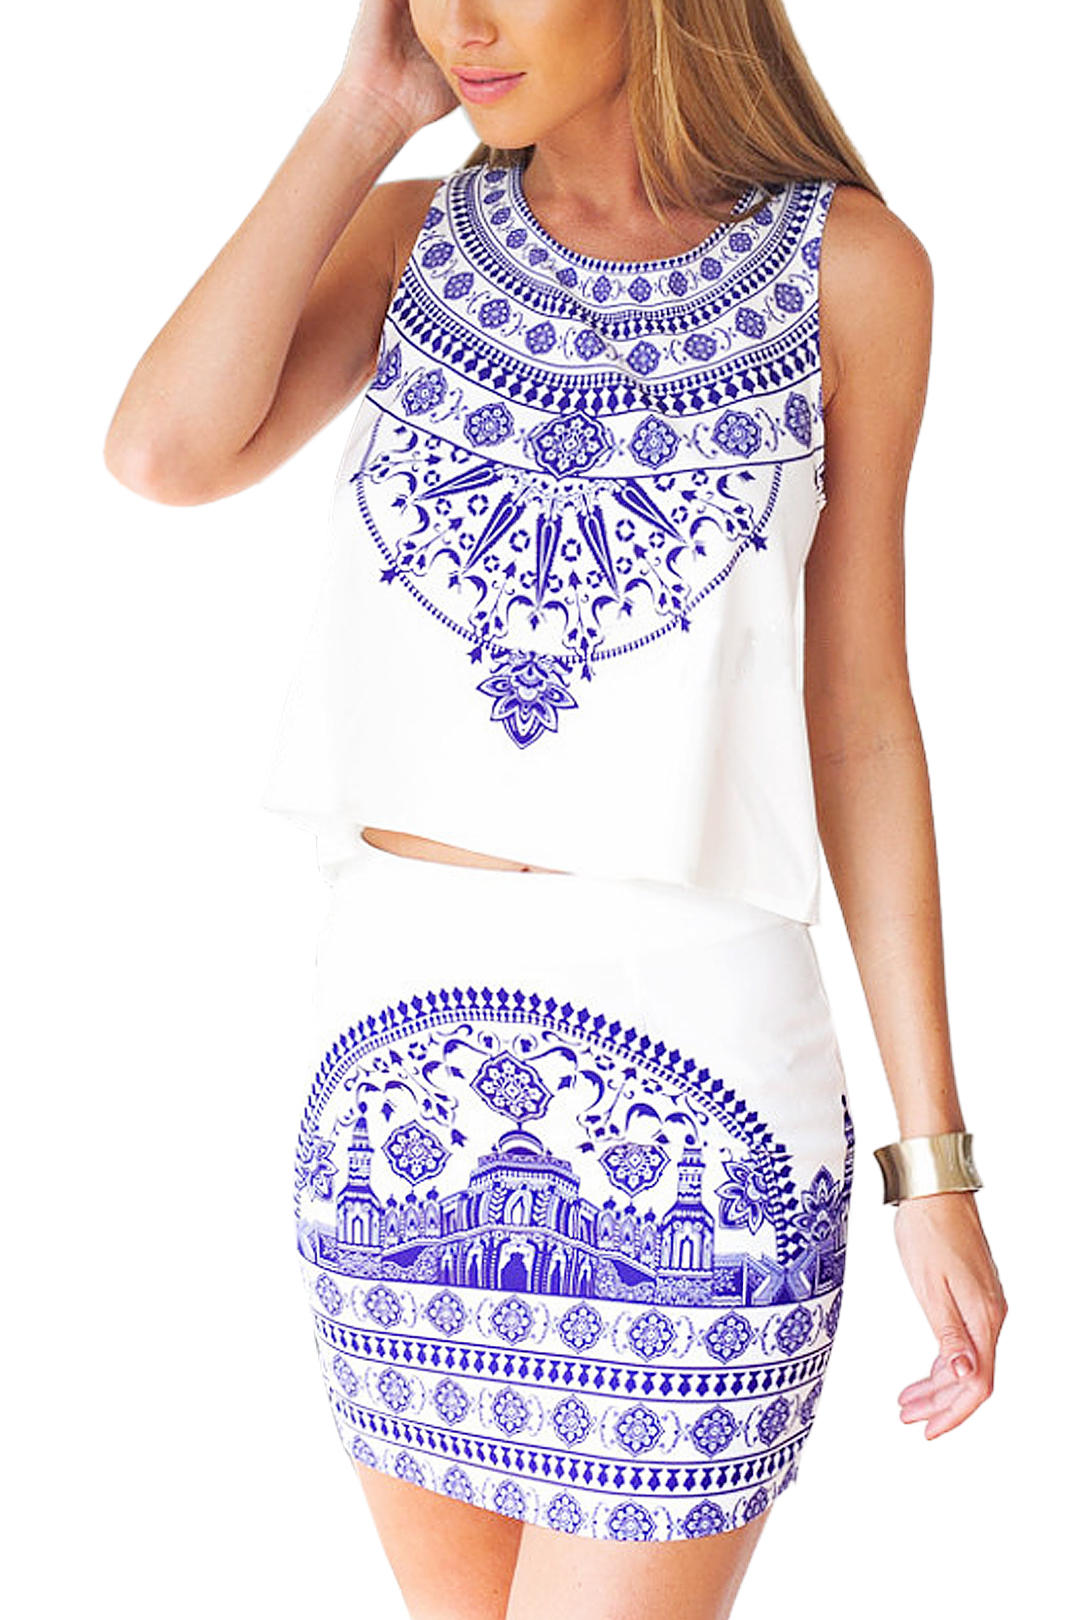 Porcelain Sleeveless Floral Crop Top With Skirt